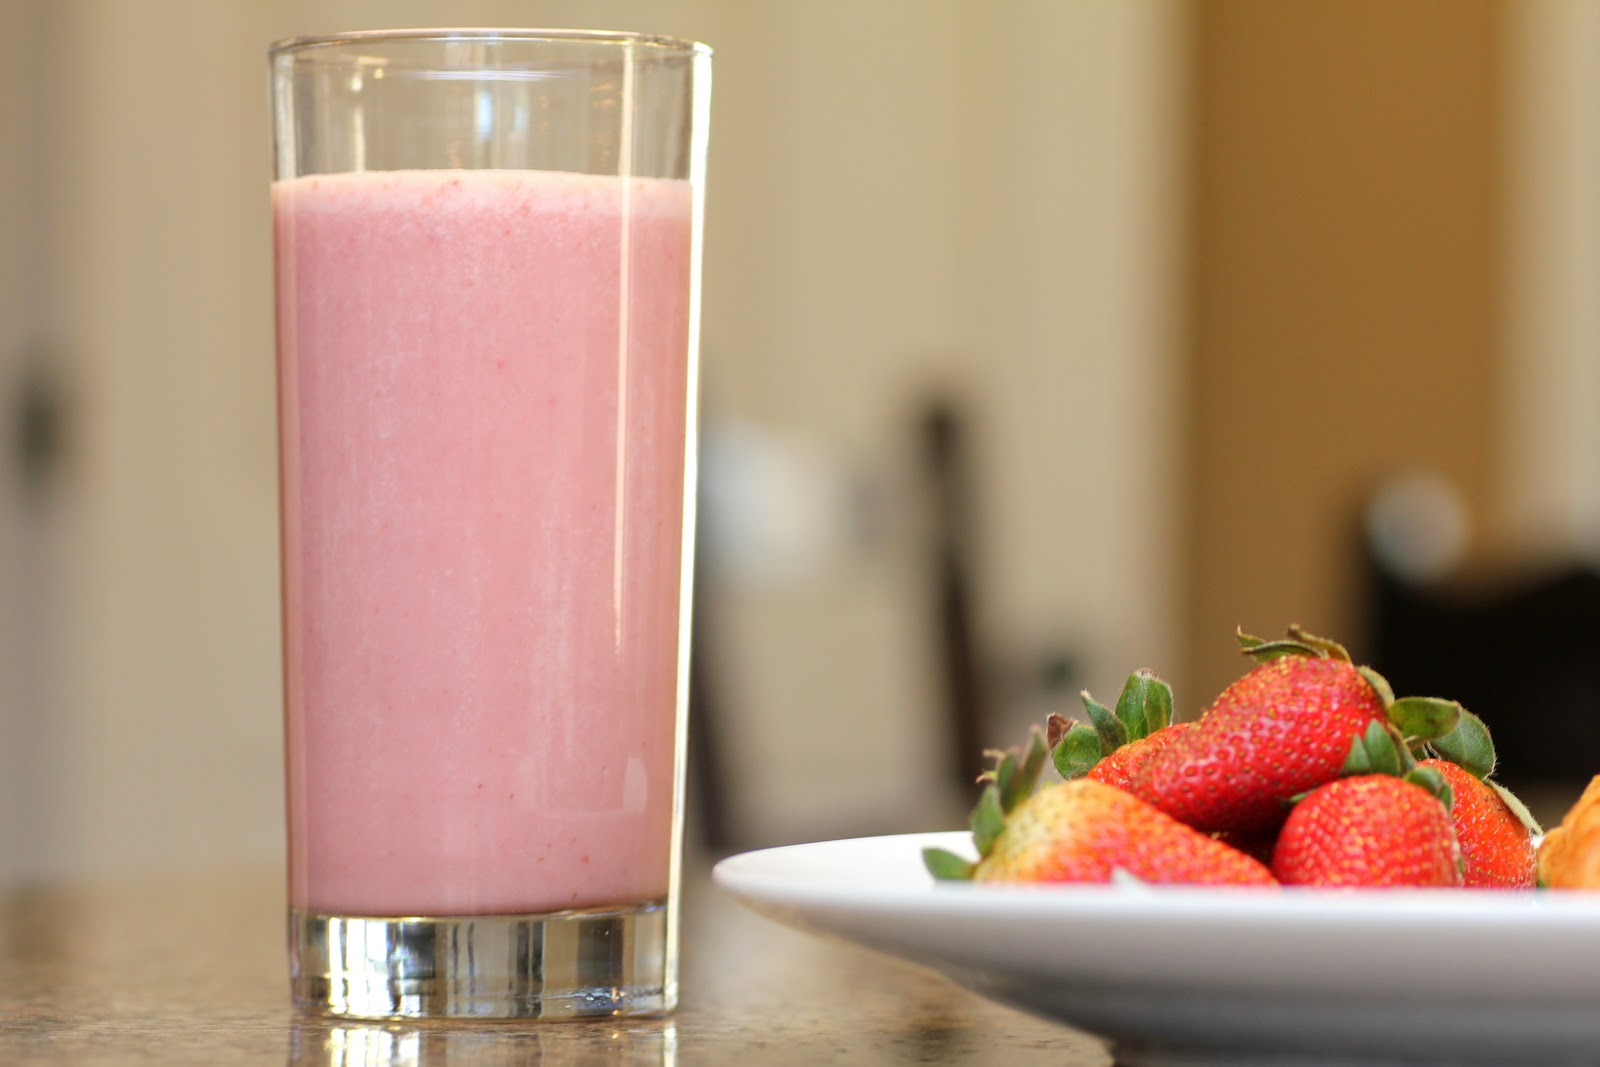 Protein Shakes: The Pros and Cons | inreads